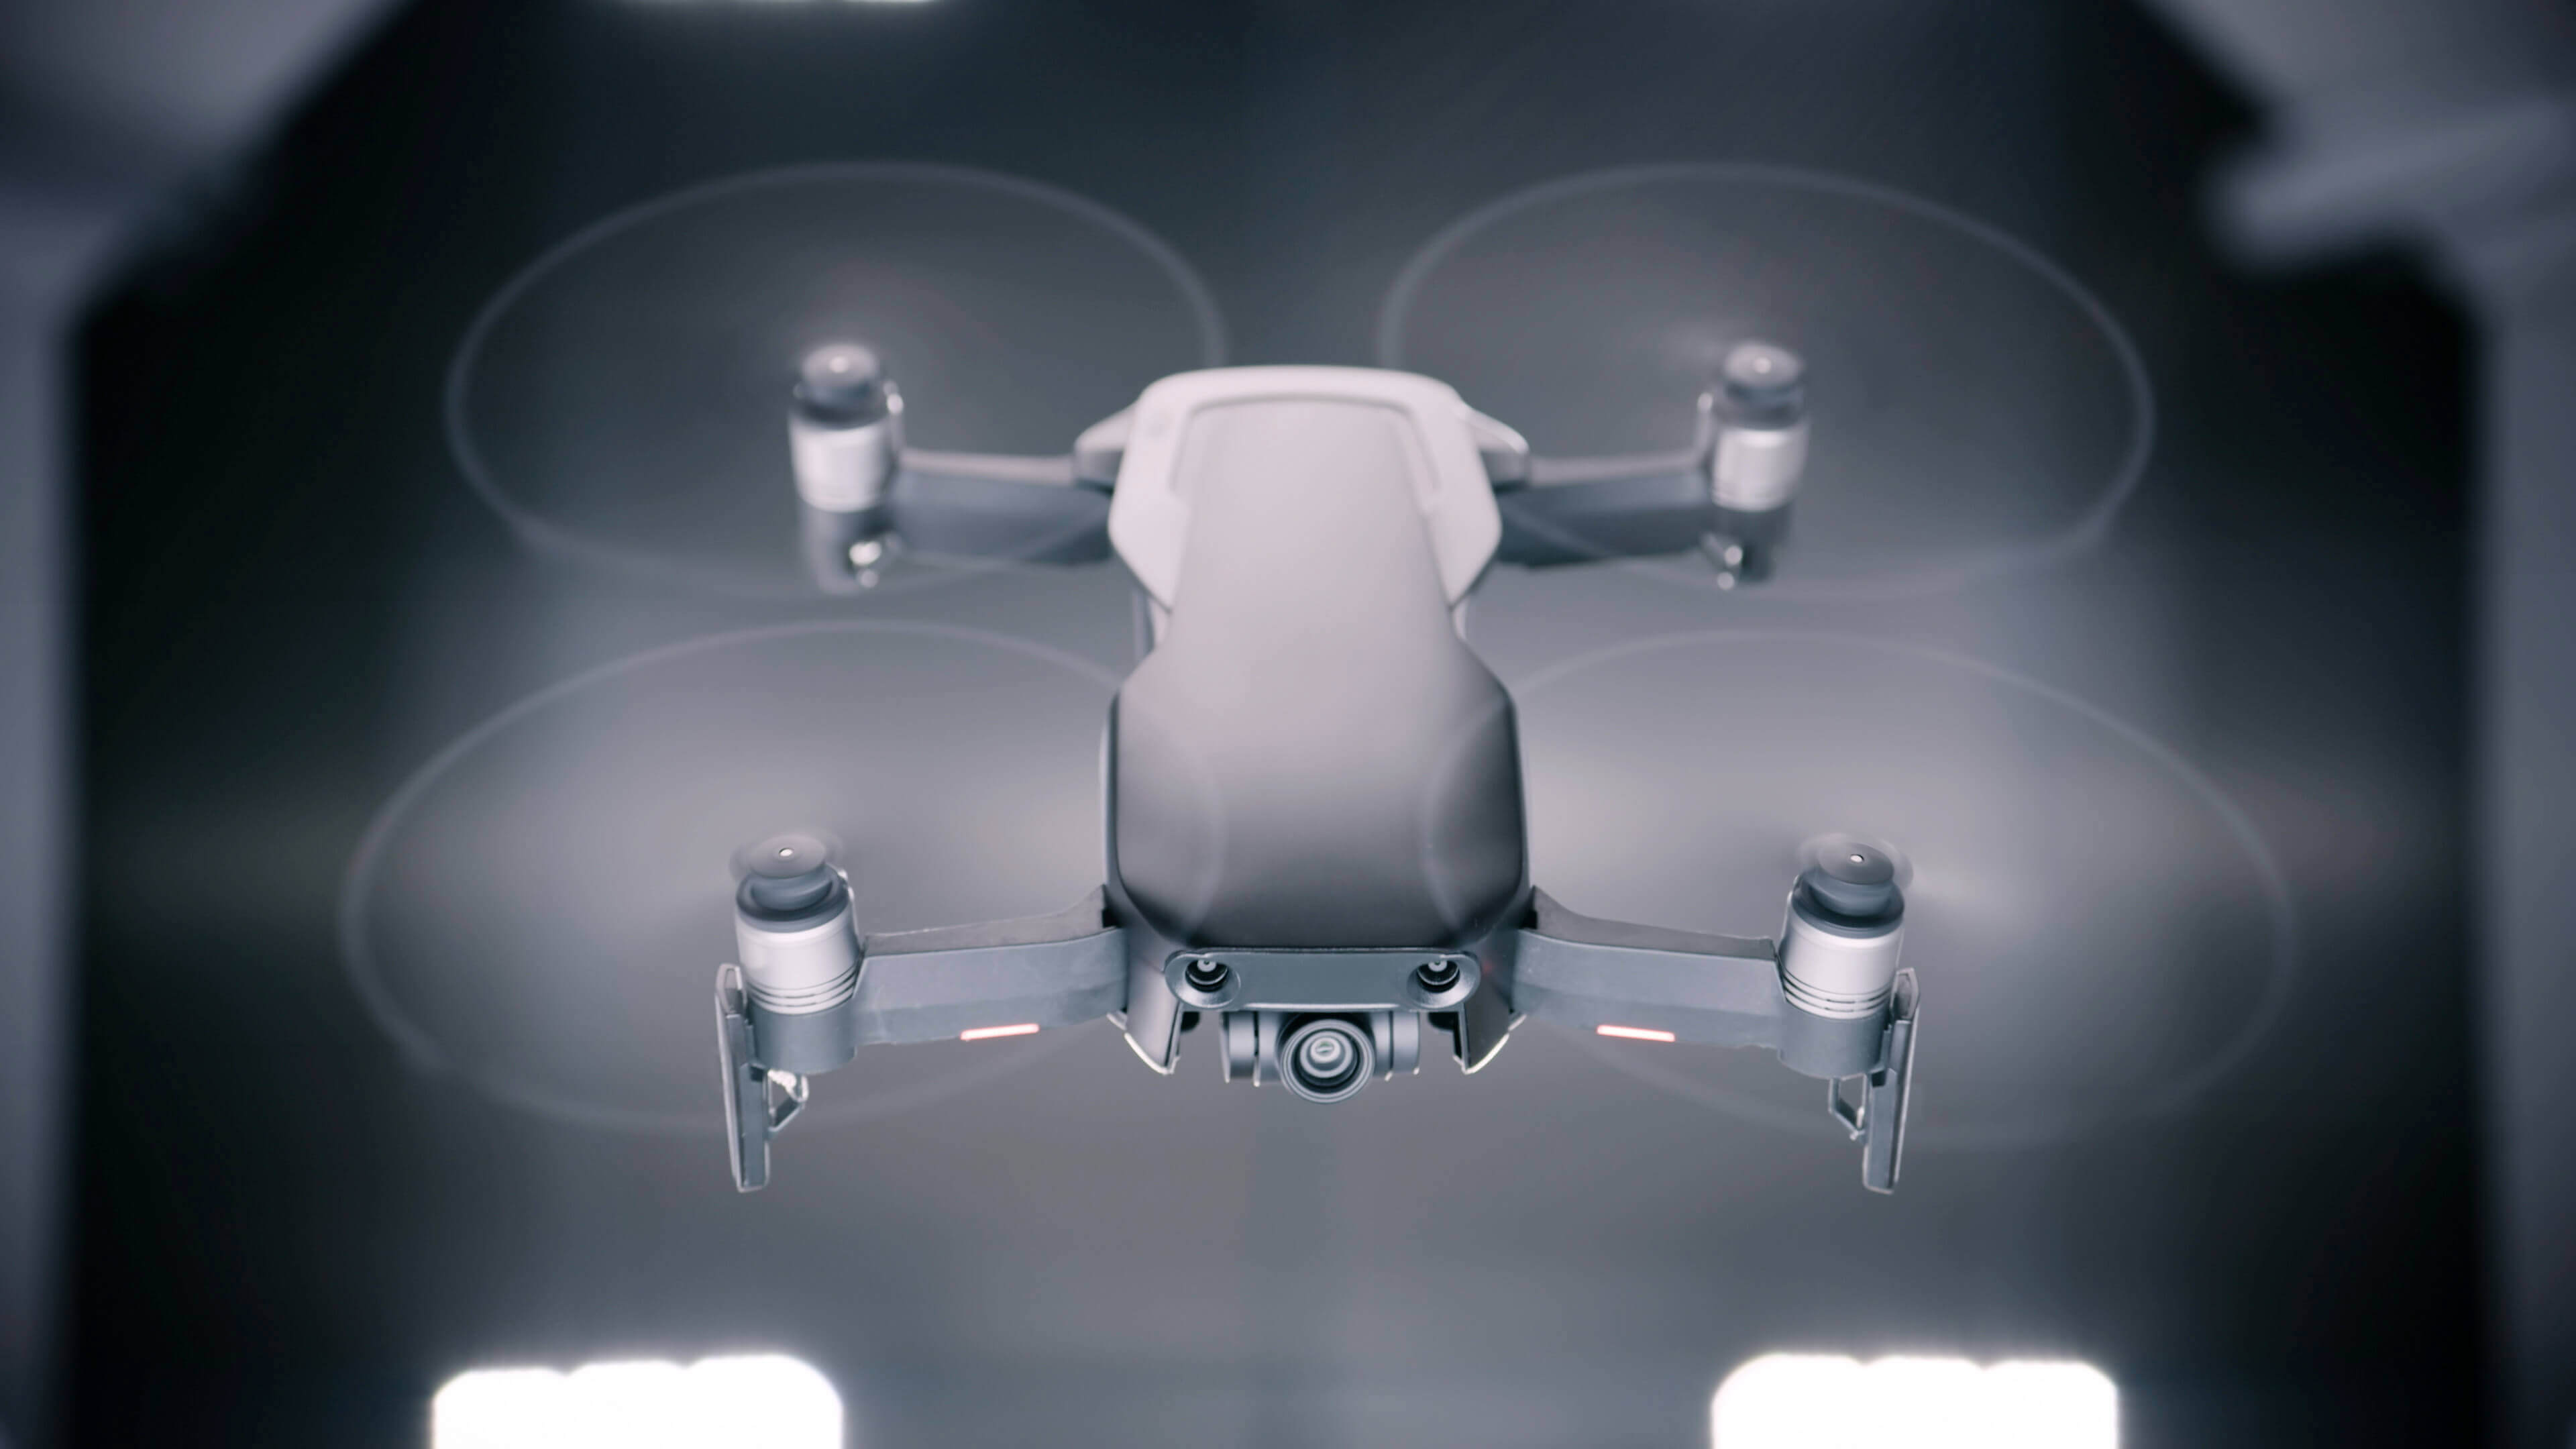 DJI - Introducing the Mavic Air